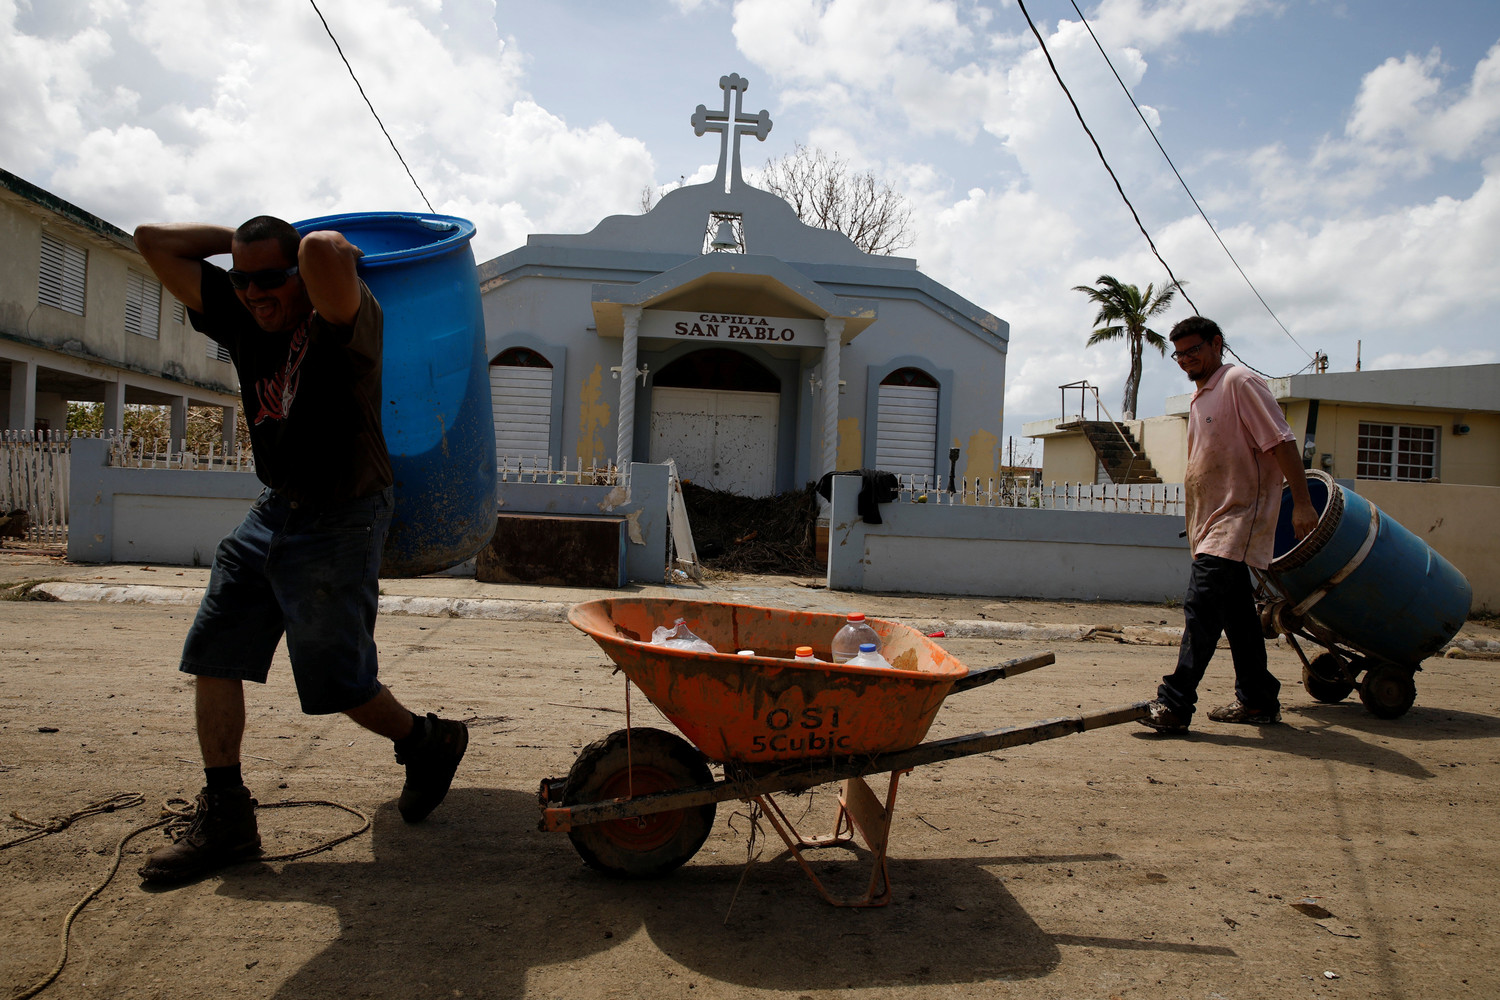 BASIC NEEDS—Men carry a container filled with water past a damaged church Sept. 24 after the area was hit by Hurricane Maria in Toa Baja, Puerto Rico.